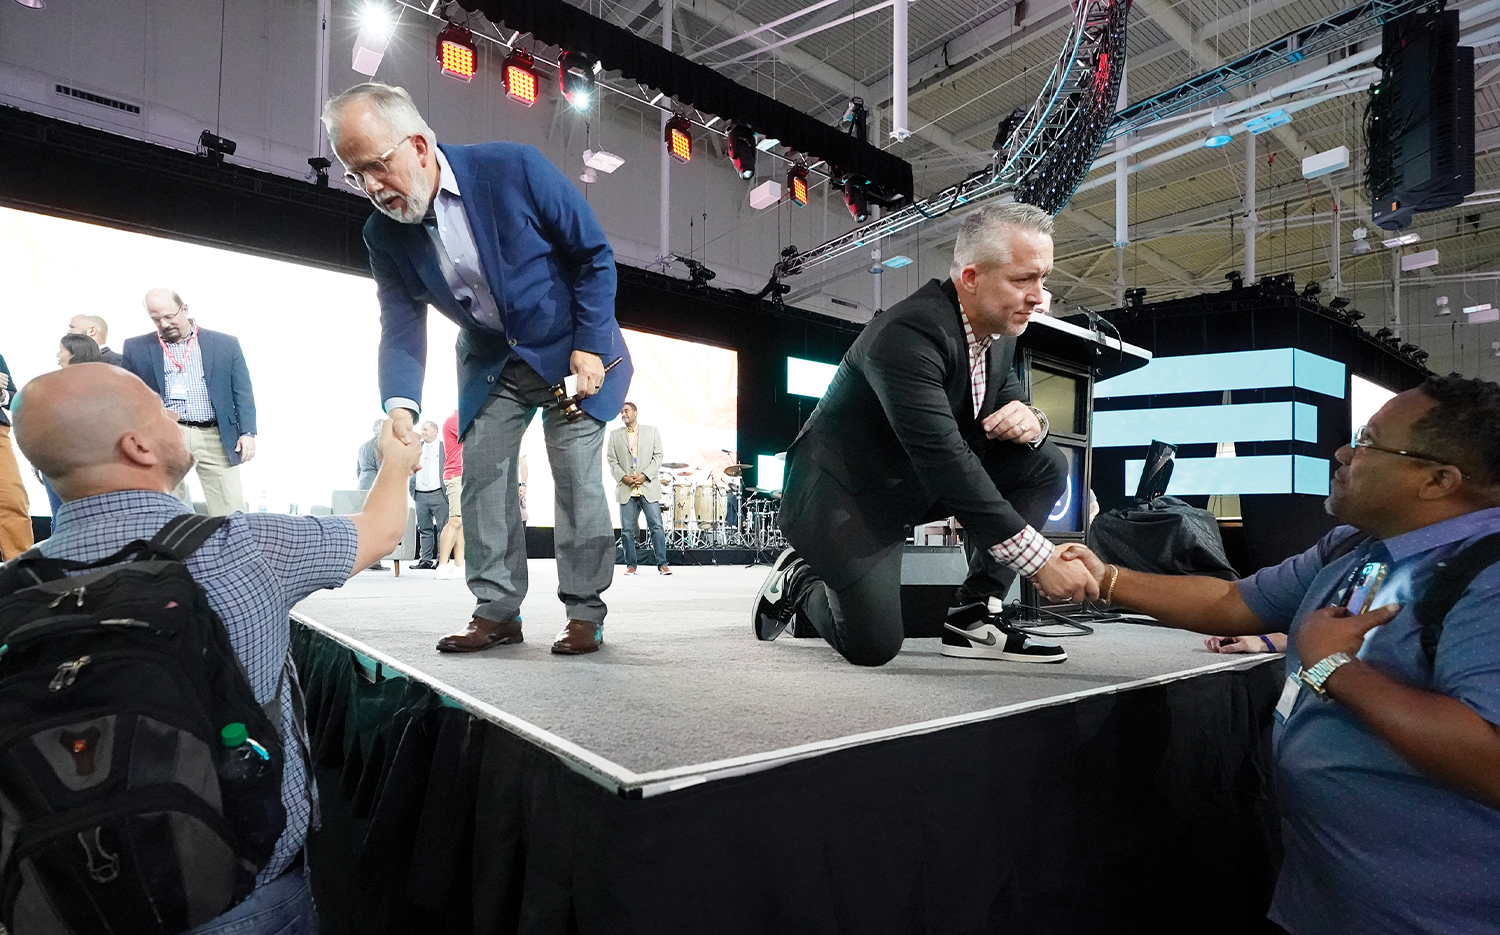 Incoming Southern Baptist Convention President Ed Litton (standing at left) and outgoing President J.D. Greear (kneeling at right) talk with denomination members at the conclusion of the annual Southern Baptist Convention on June 16.